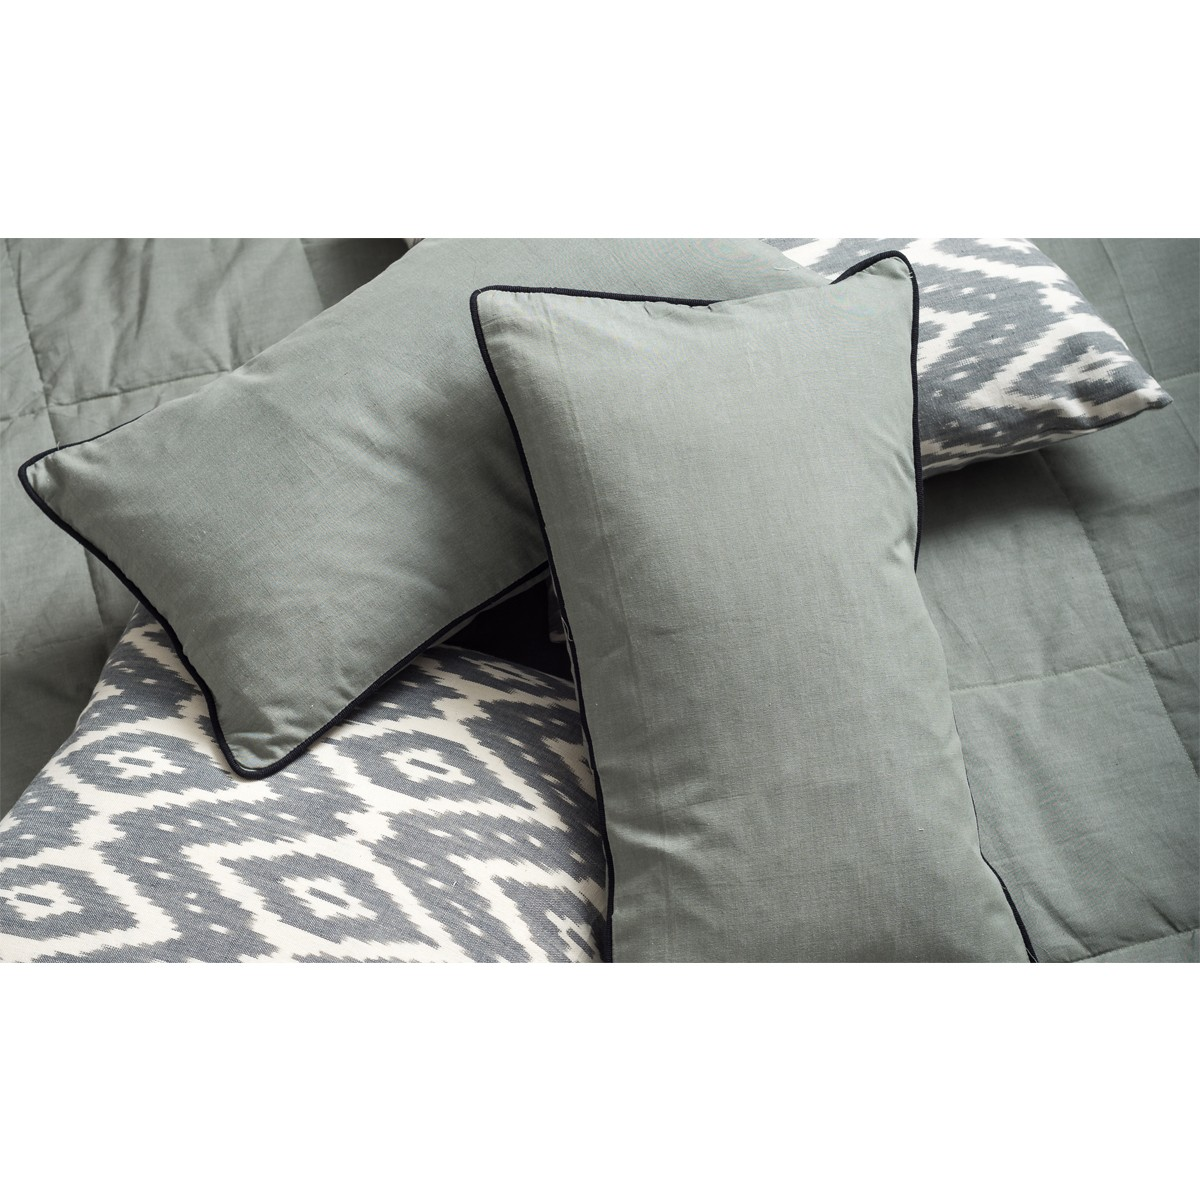 Mist - Grey cushion with black piping - Single